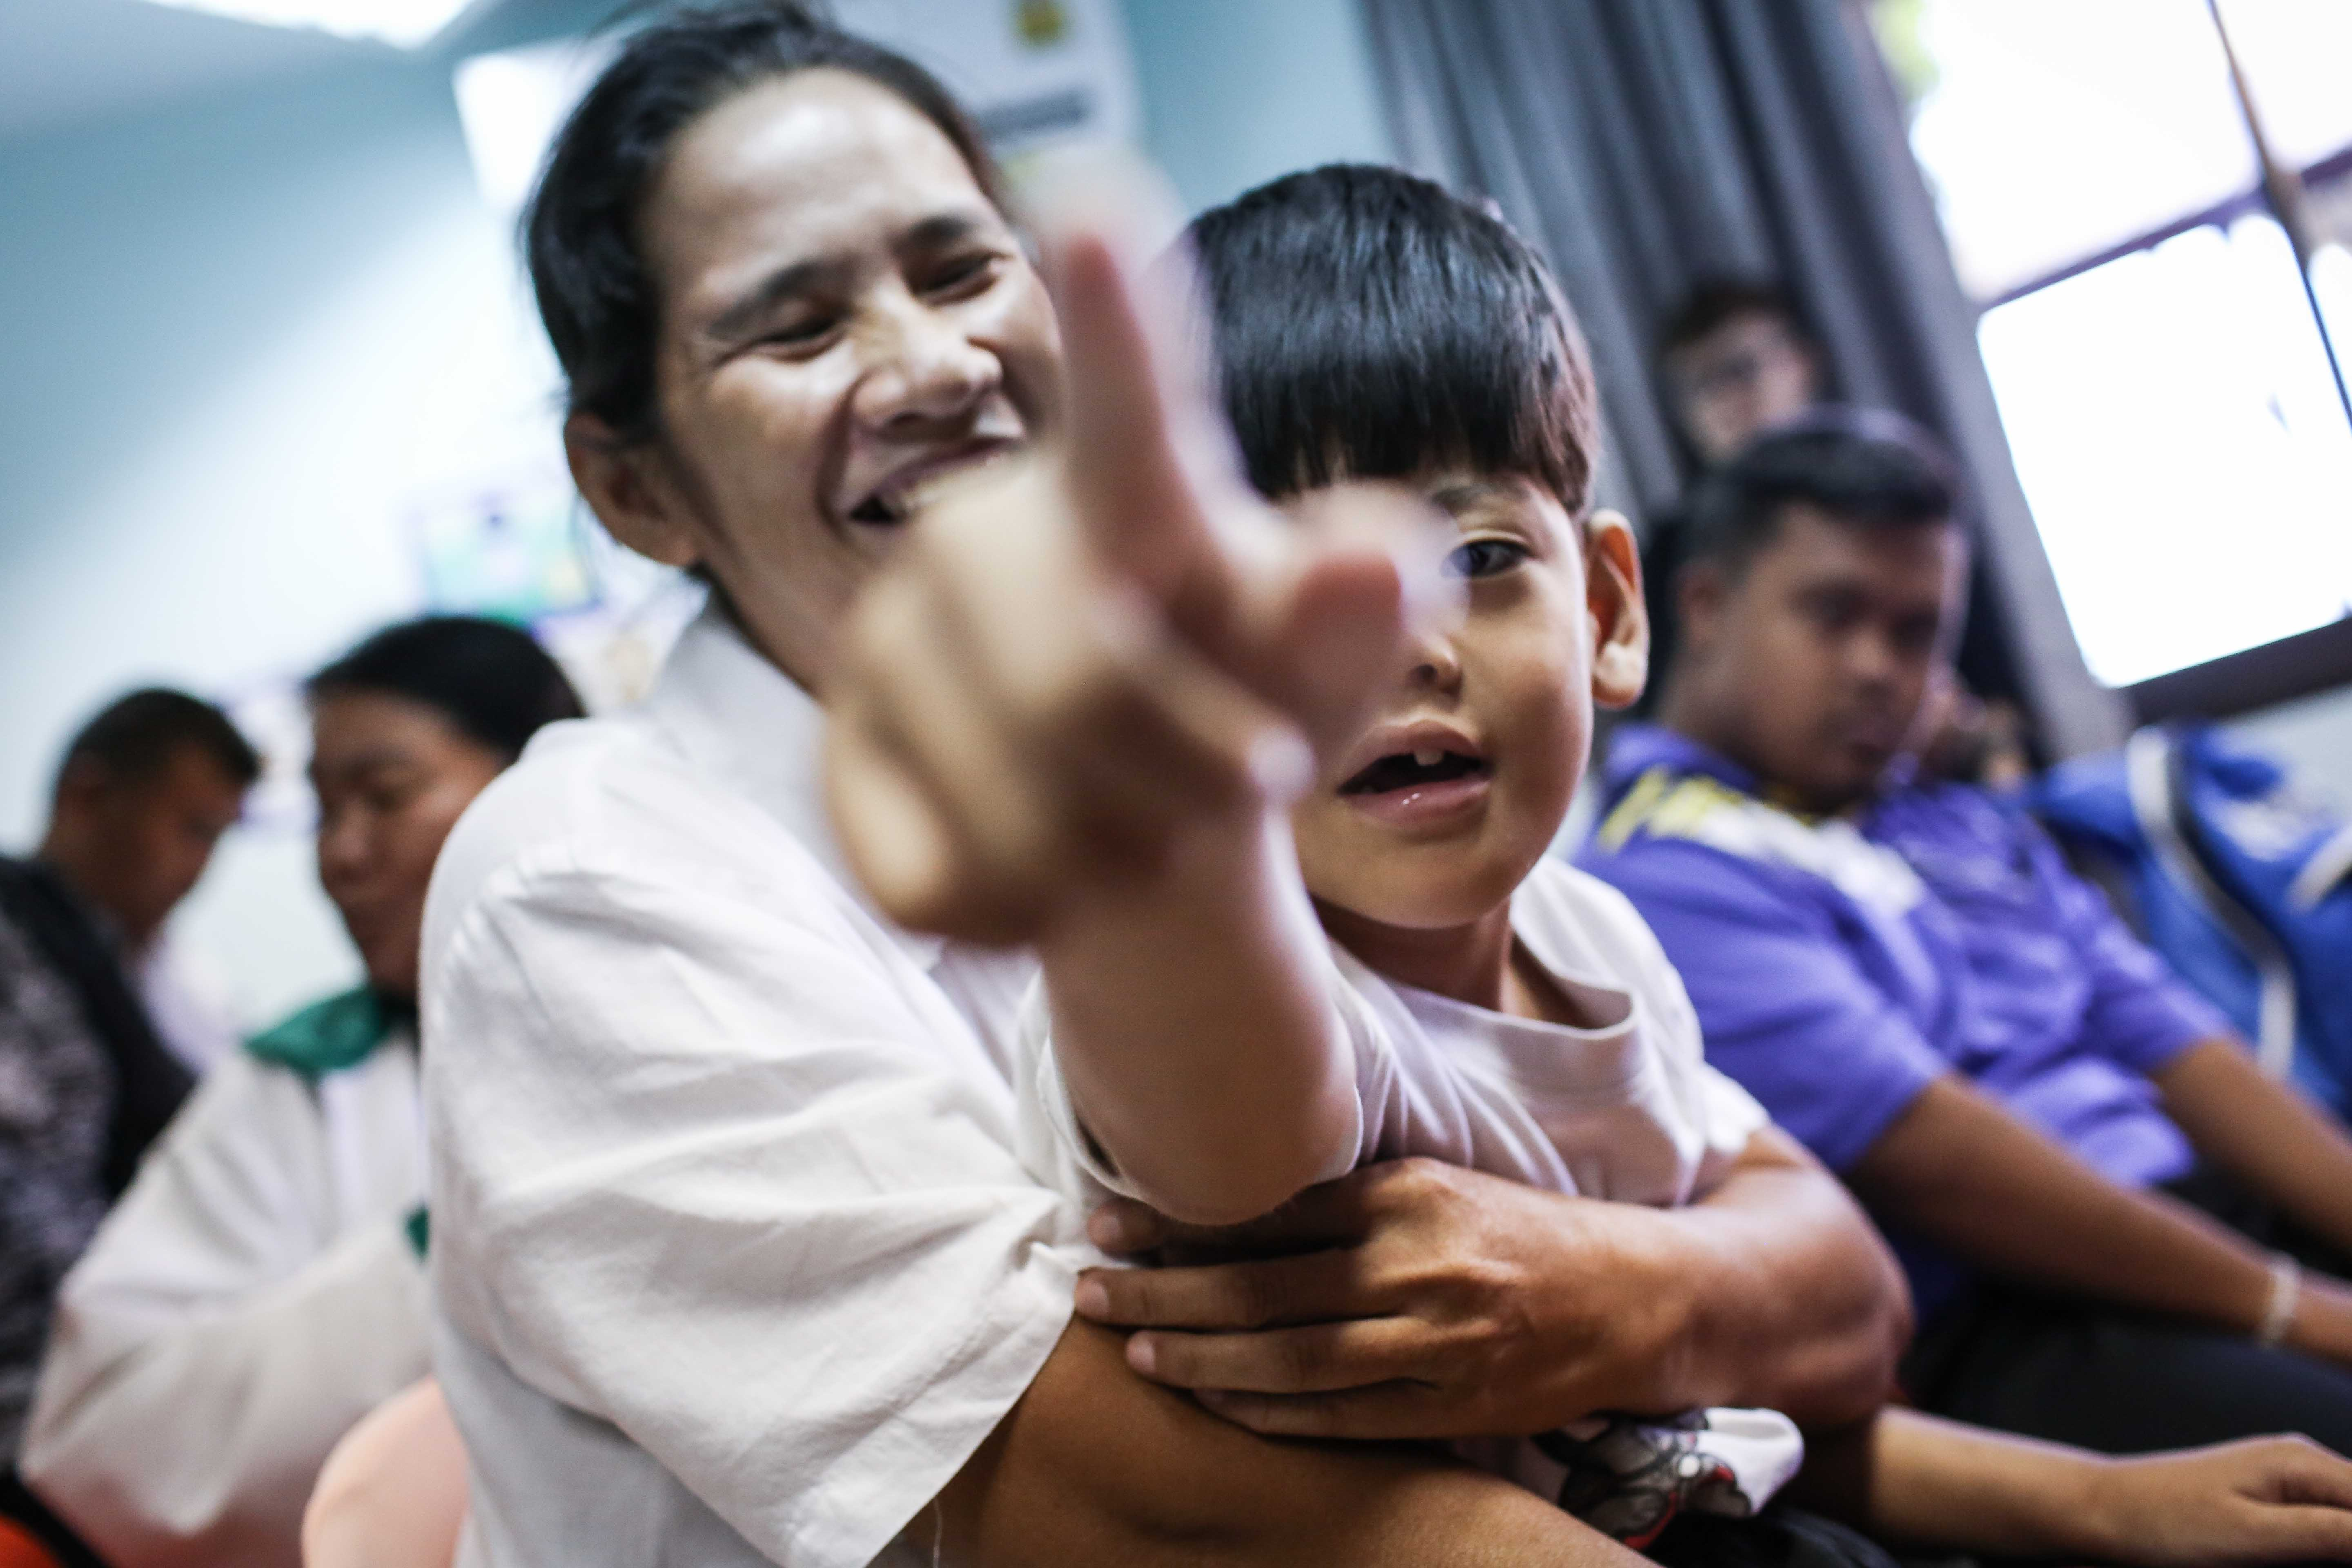 A child with intellectual disabilities is sitting on his mother's lap and is pointing toward the camera.